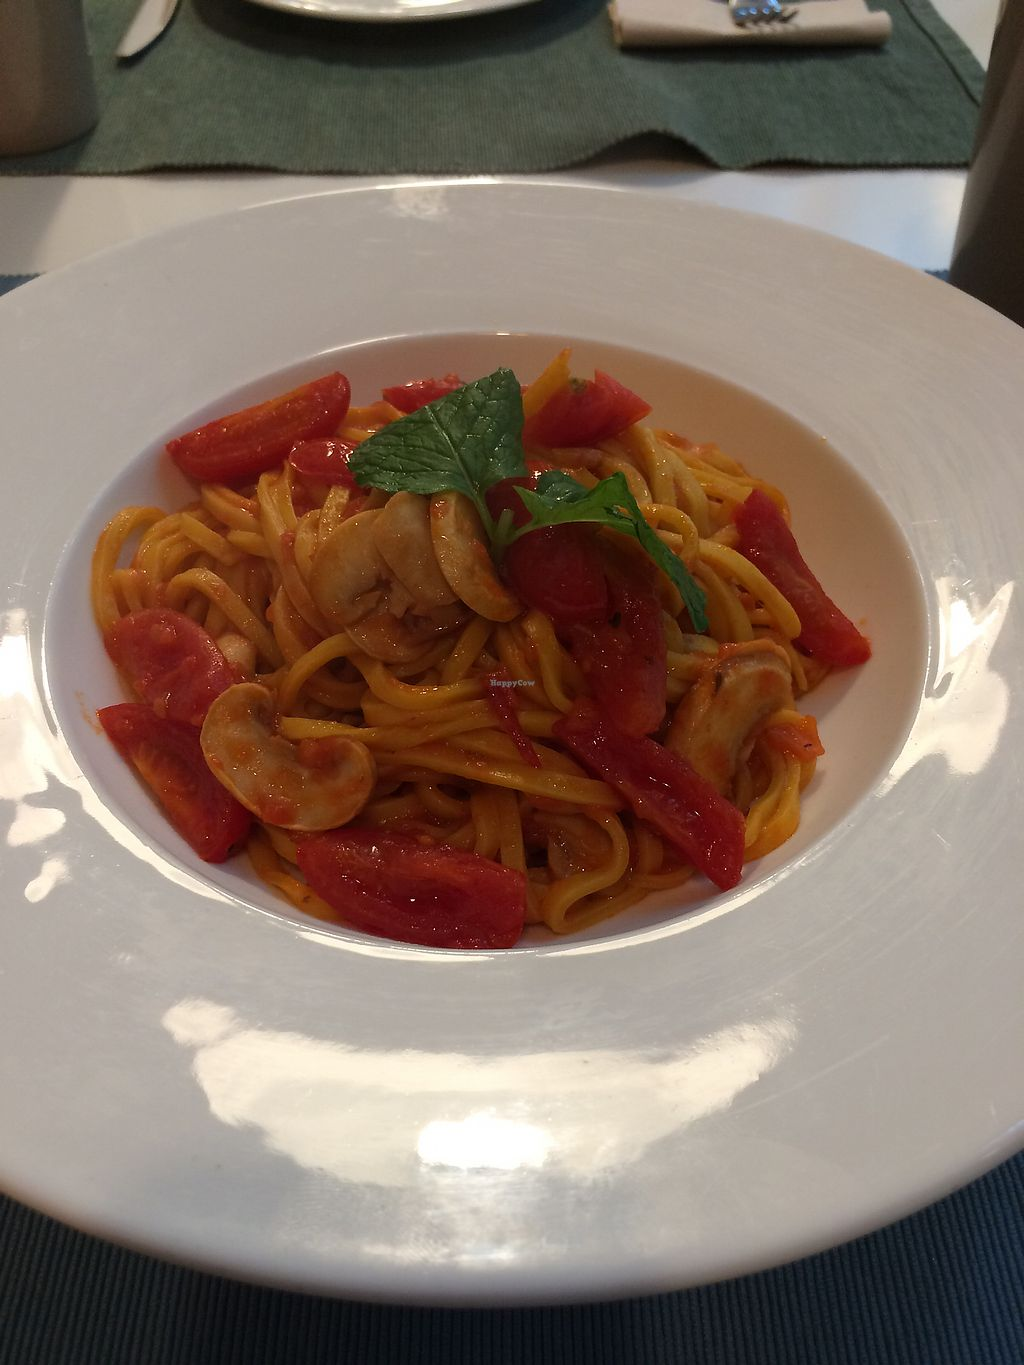 """Photo of Cloud Kitchen  by <a href=""""/members/profile/Italian.vegan"""">Italian.vegan</a> <br/>Tomato pasta <br/> October 10, 2017  - <a href='/contact/abuse/image/64283/313927'>Report</a>"""